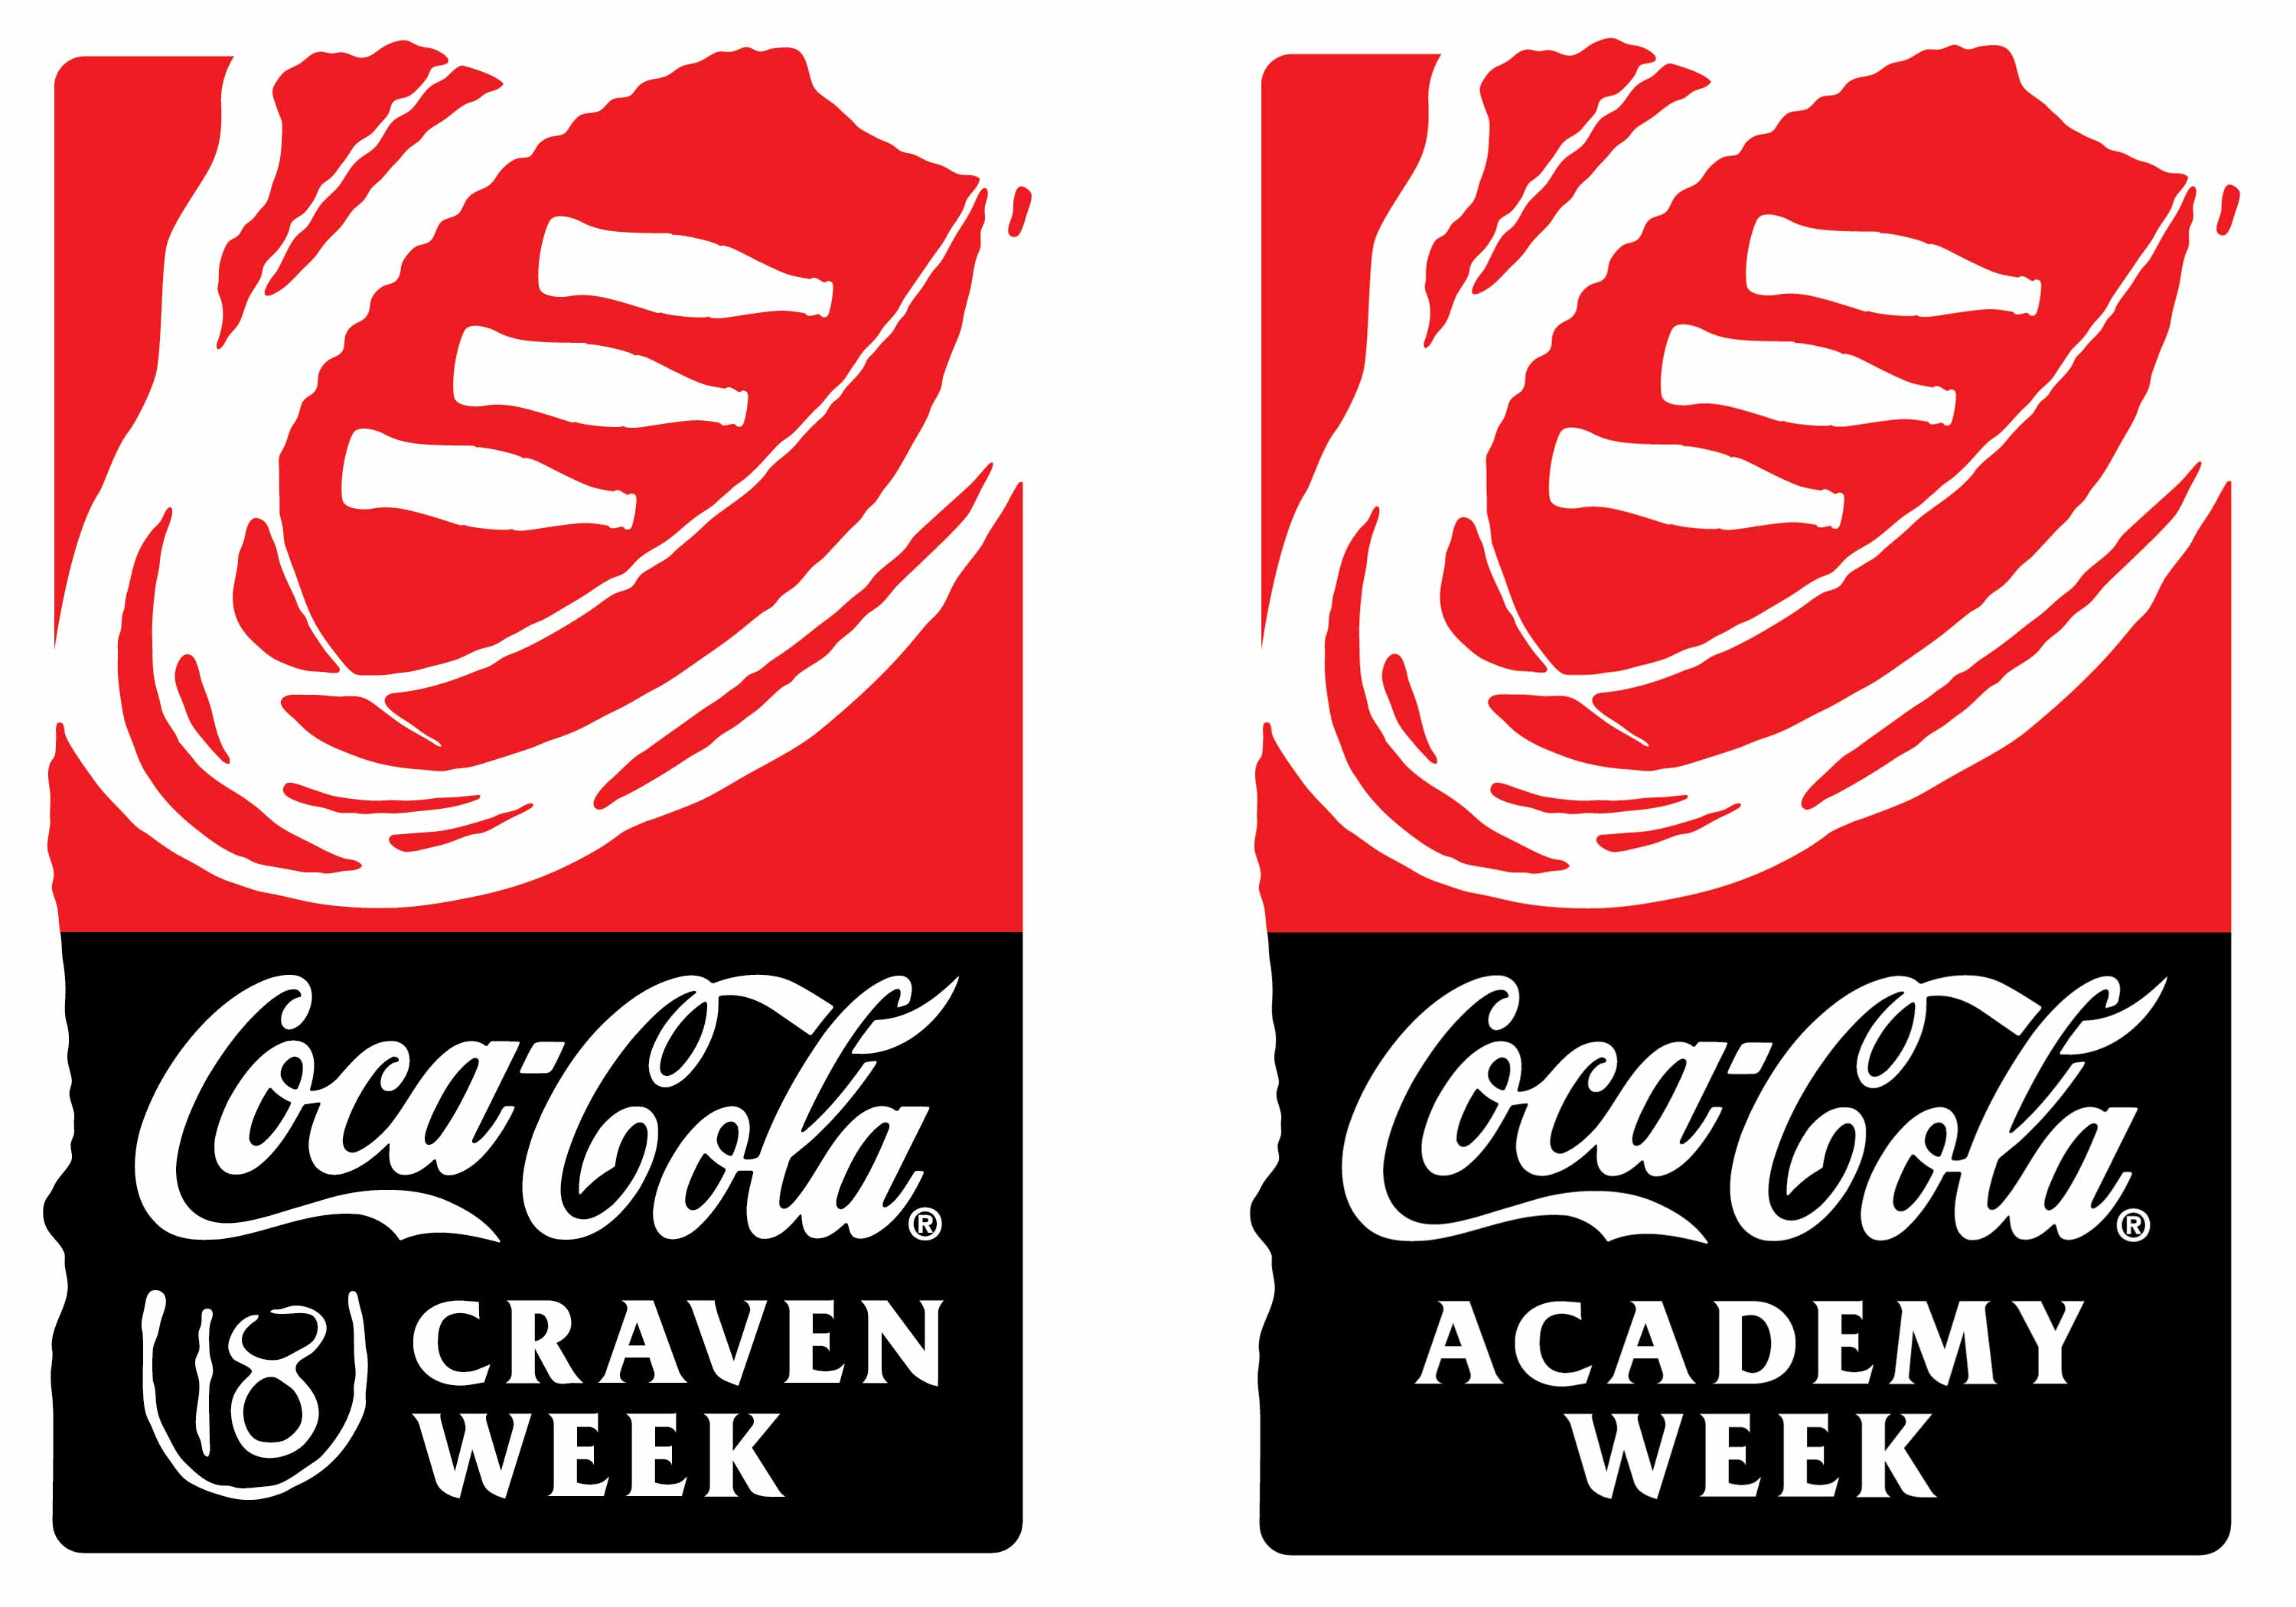 Craven-and-Academy-logos